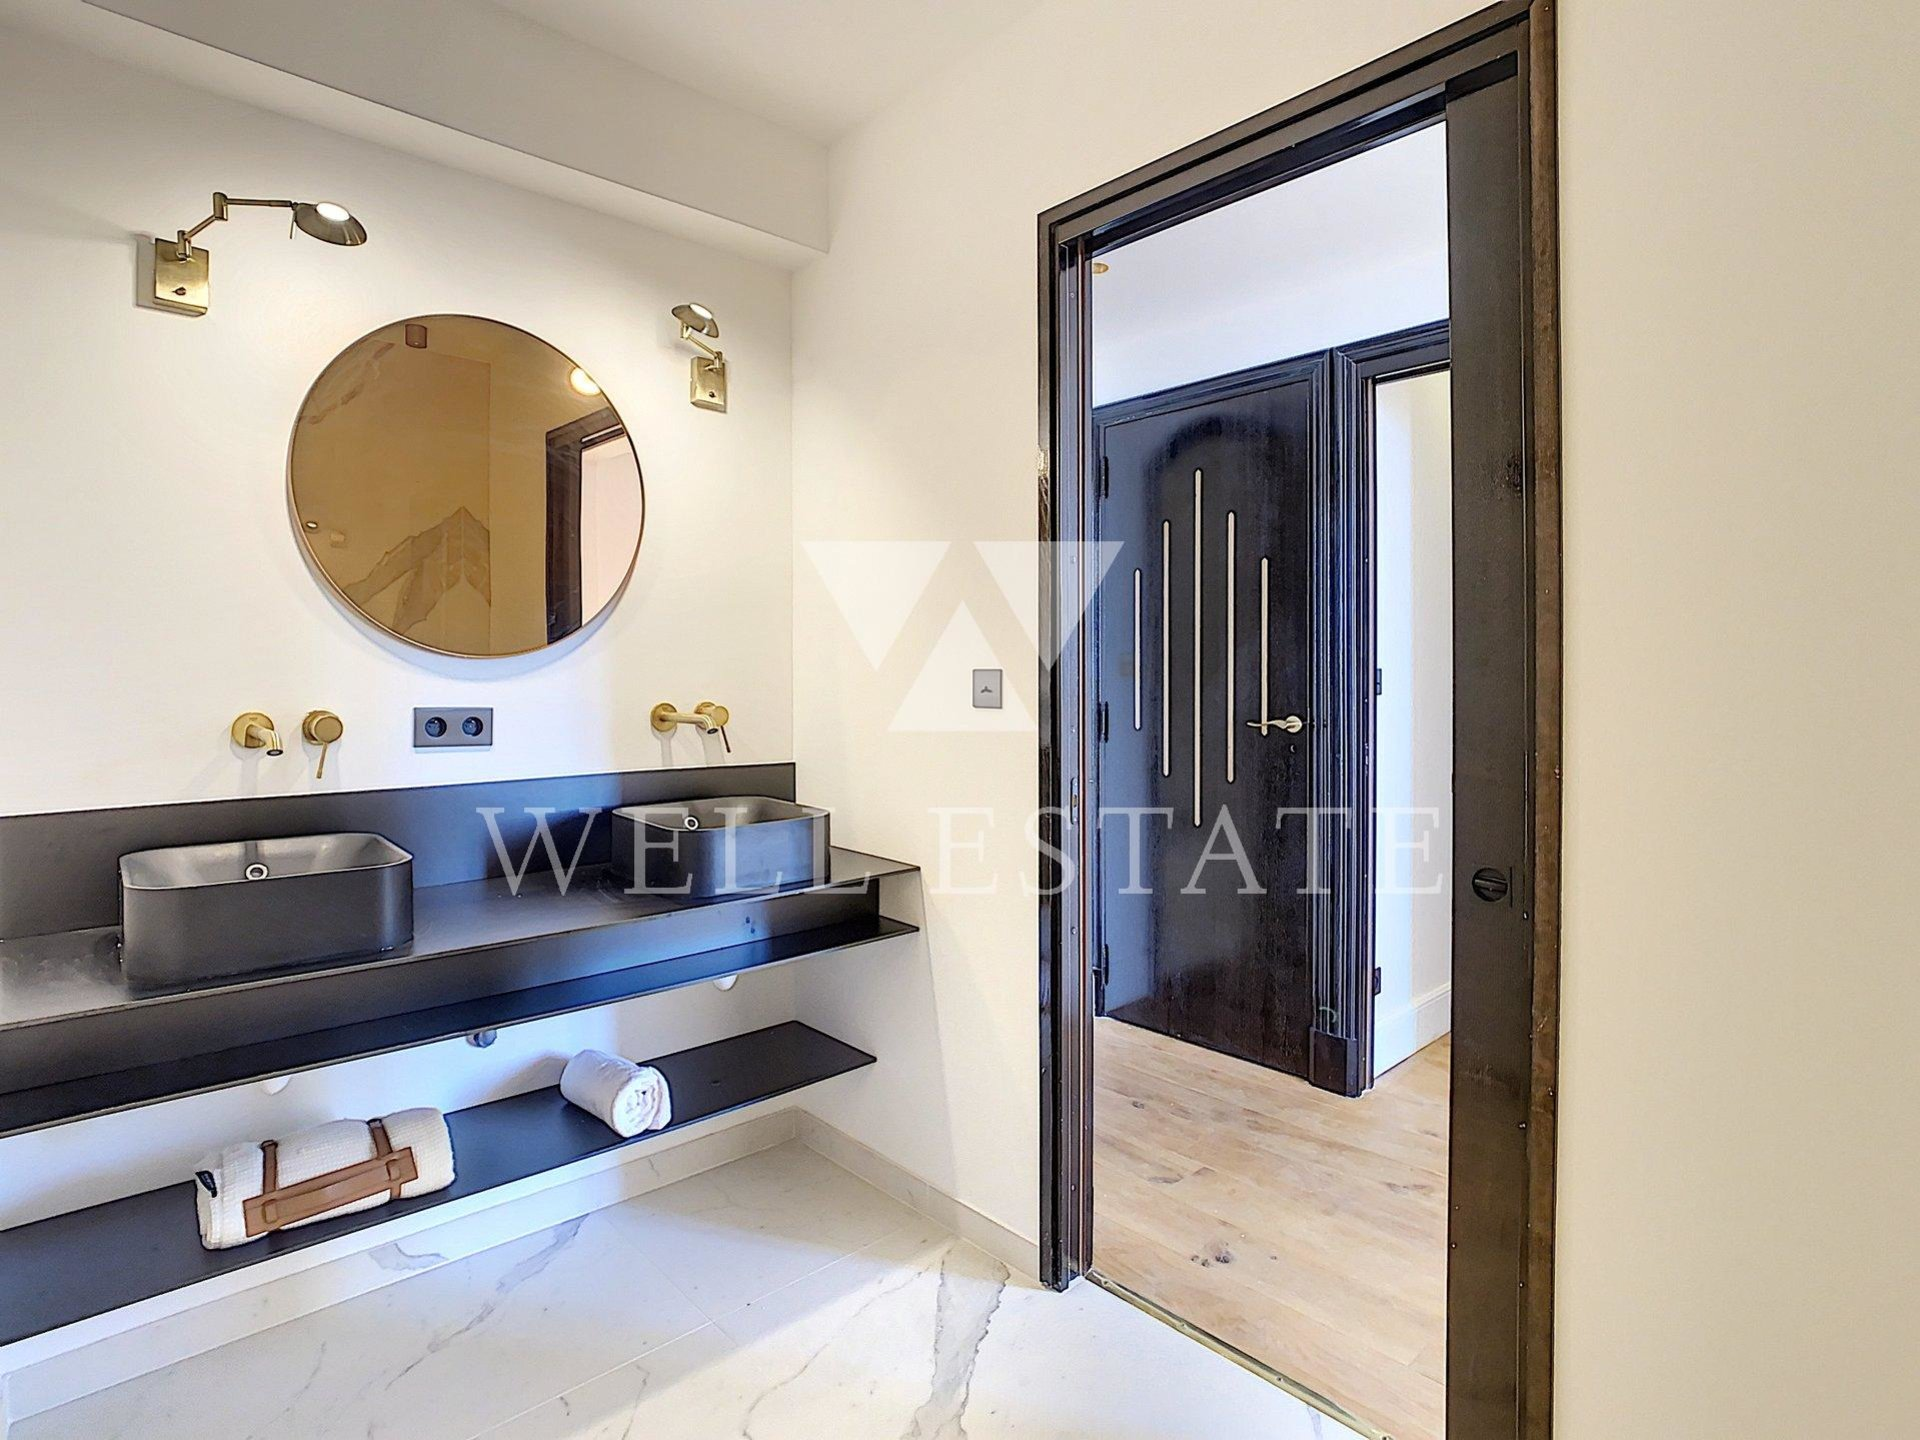 CANNES OXFORD LAST FLOOR MAGNIFICENT RENOVATED APARTMENT 260M2 4 BEDROOMS